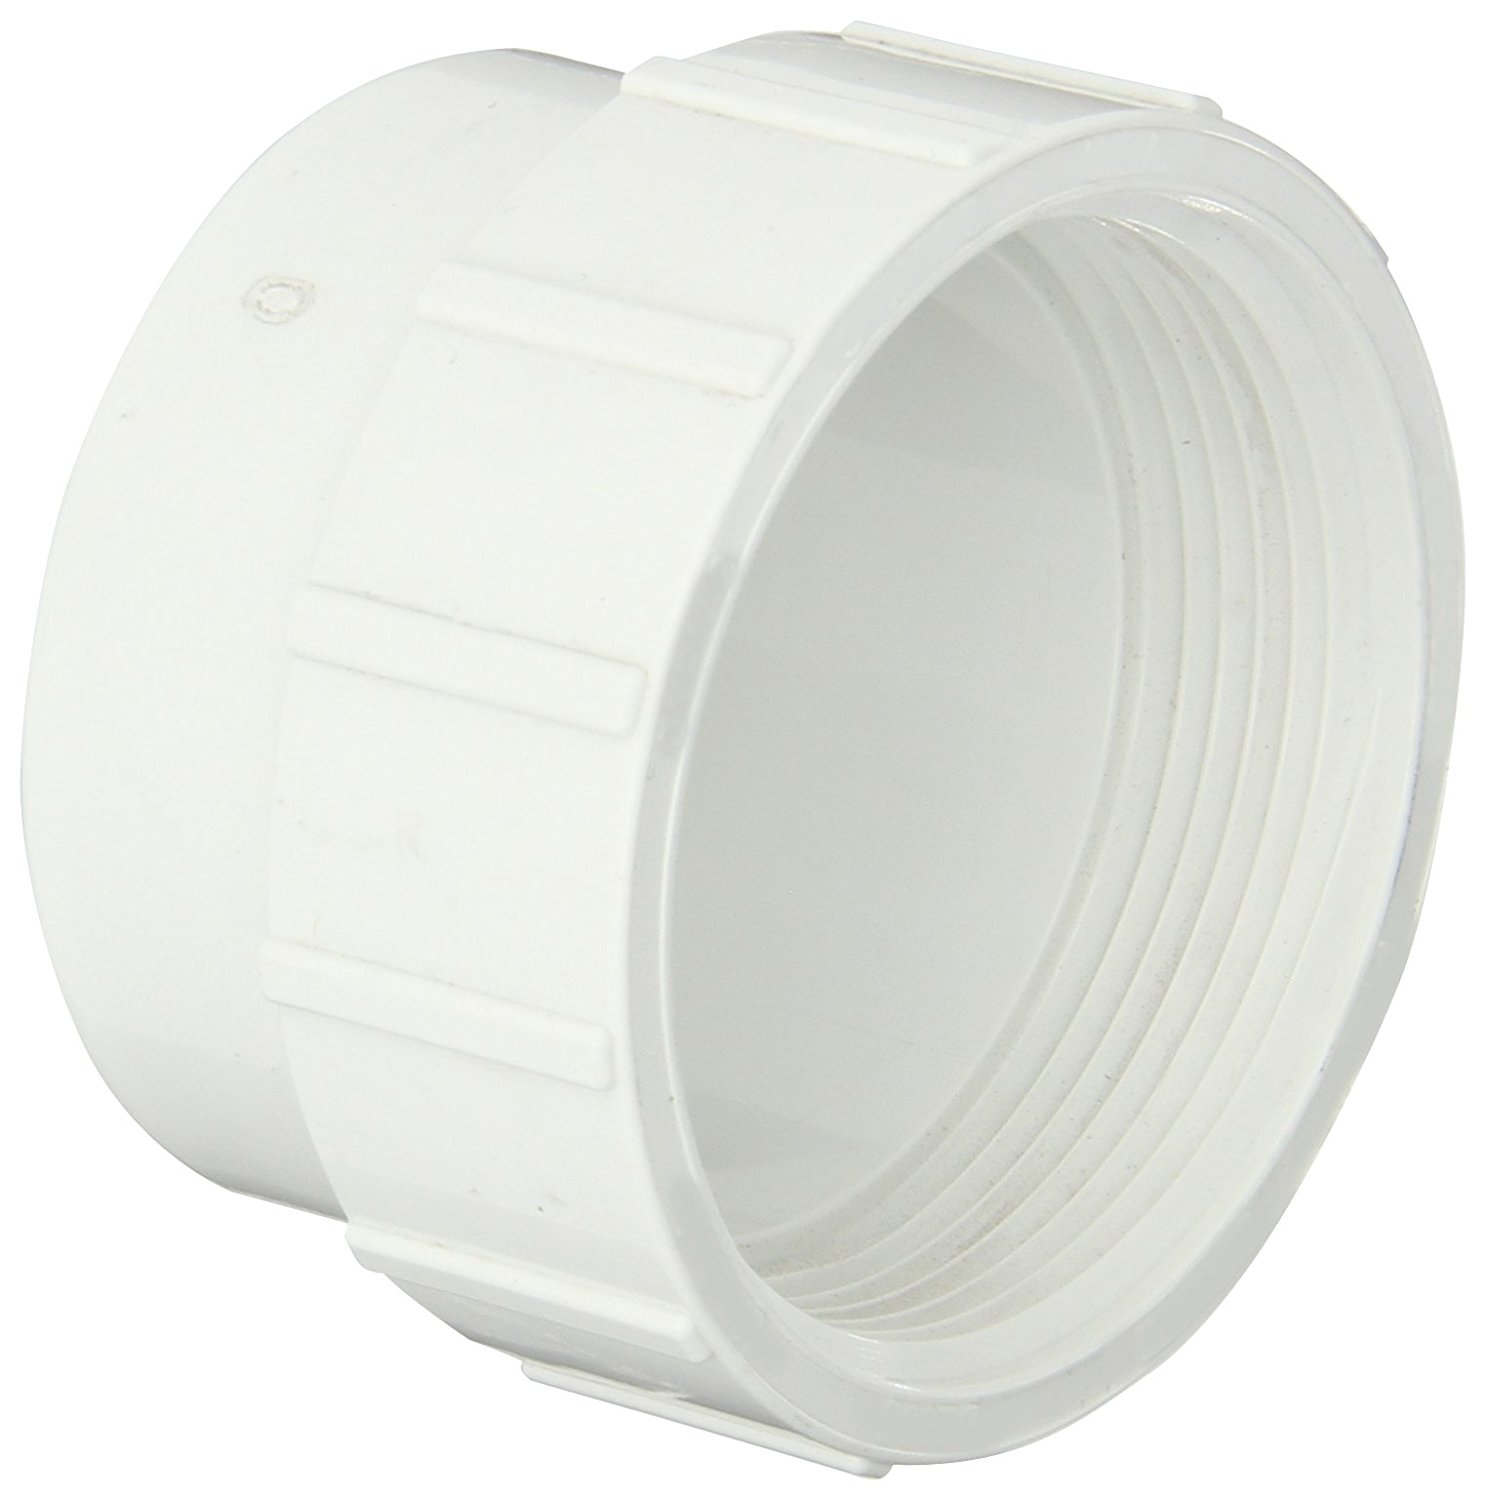 2-1//2 NPT Male Cleanout Plug Spears P106 Series PVC DWV Pipe Fitting